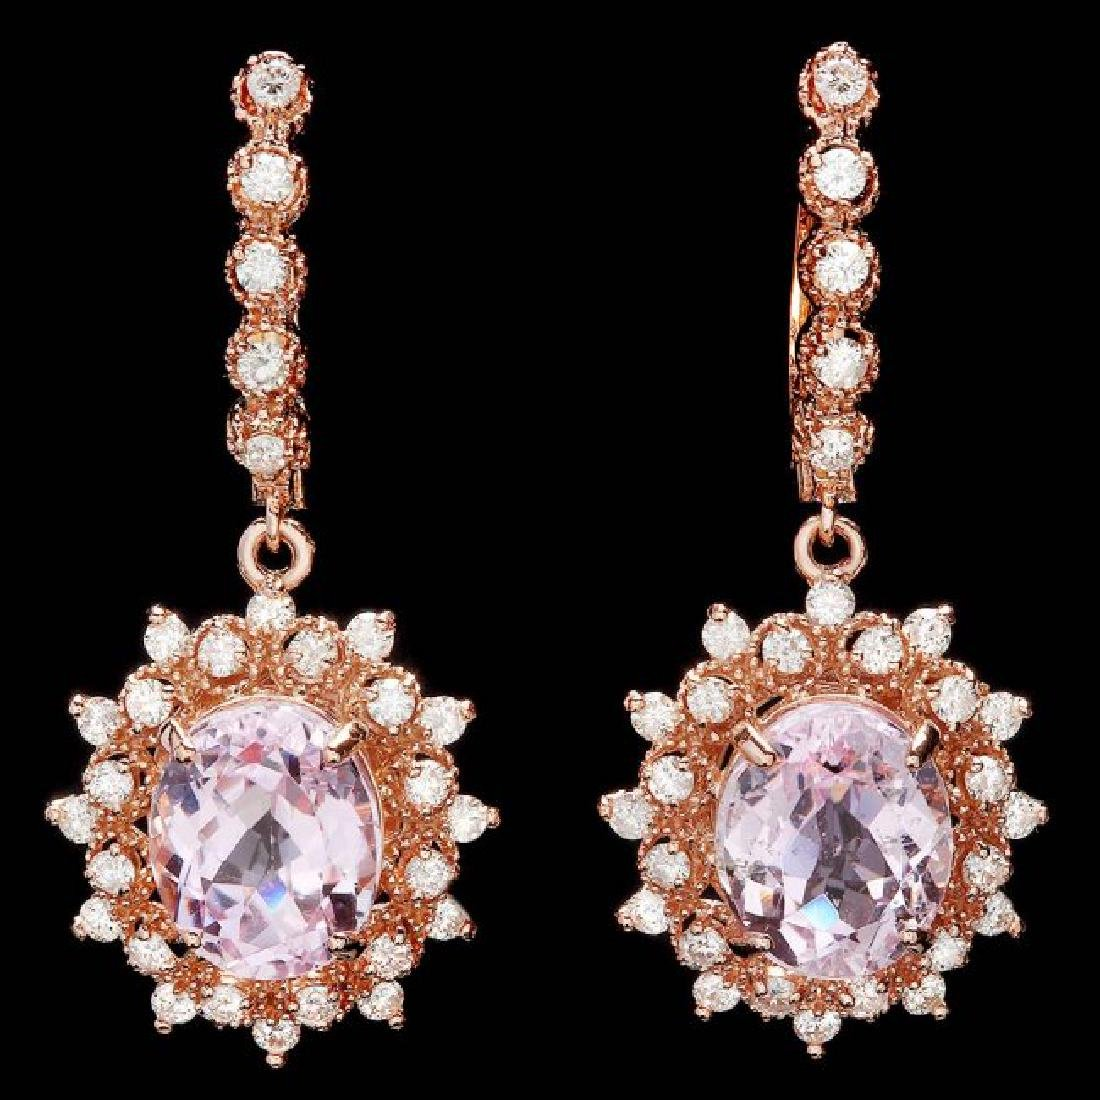 14k Rose 9.00ct Kunzite 1.60ct Diamond Earrings